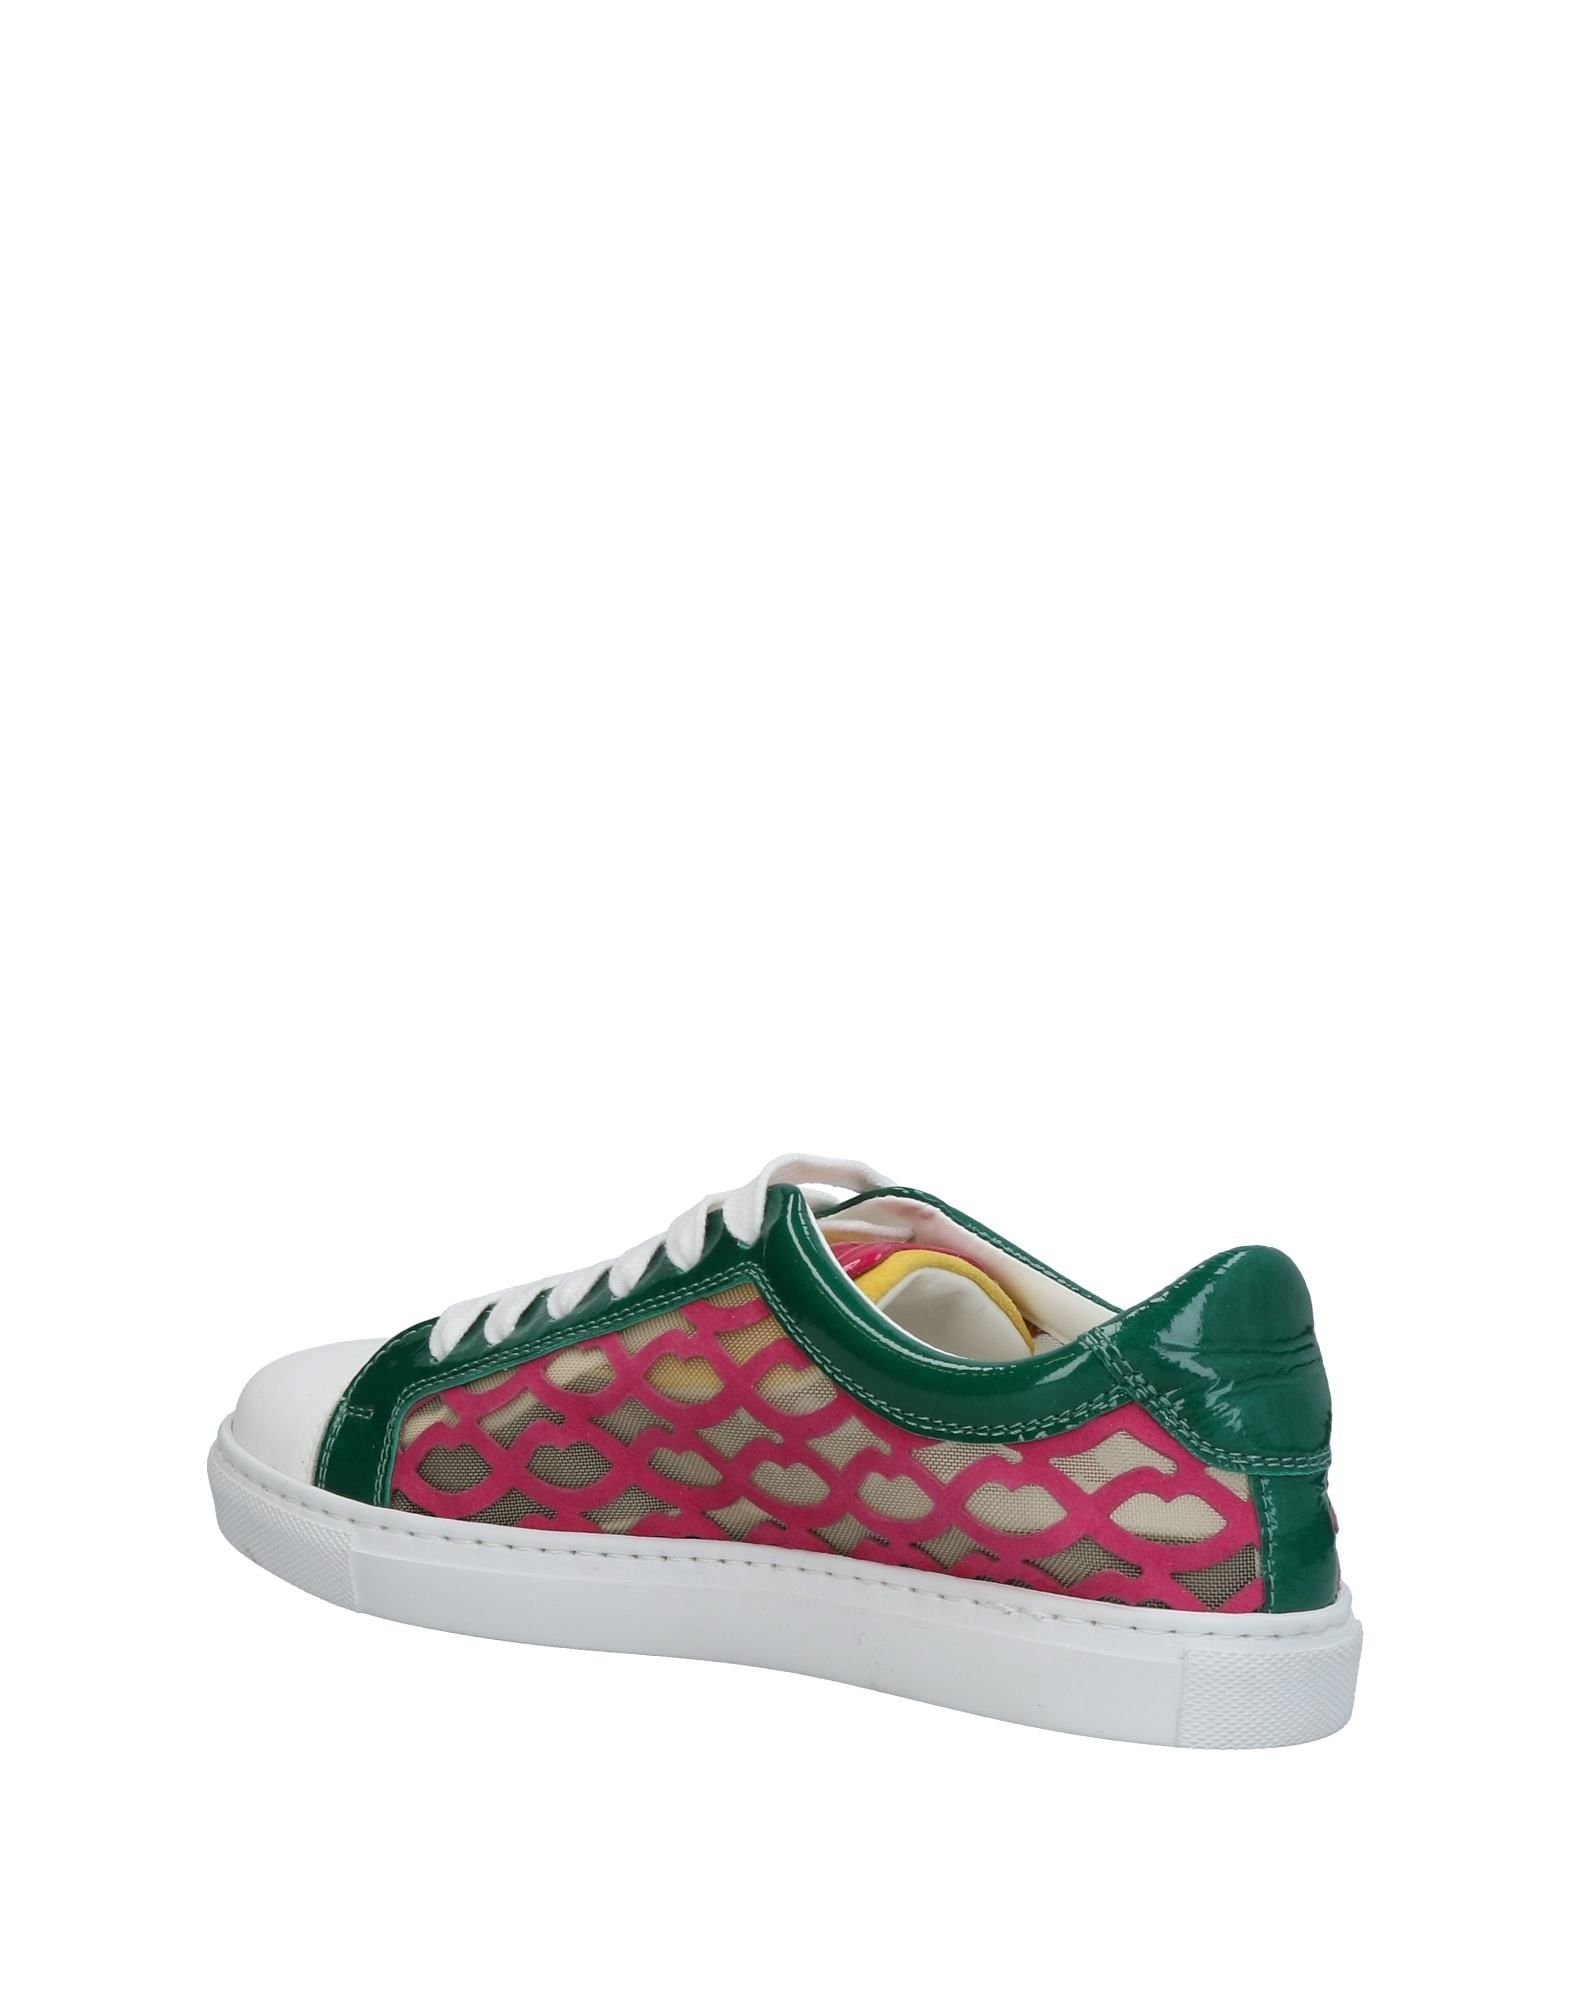 ... Sneakers Giannico Femme - Sneakers Giannico sur ...